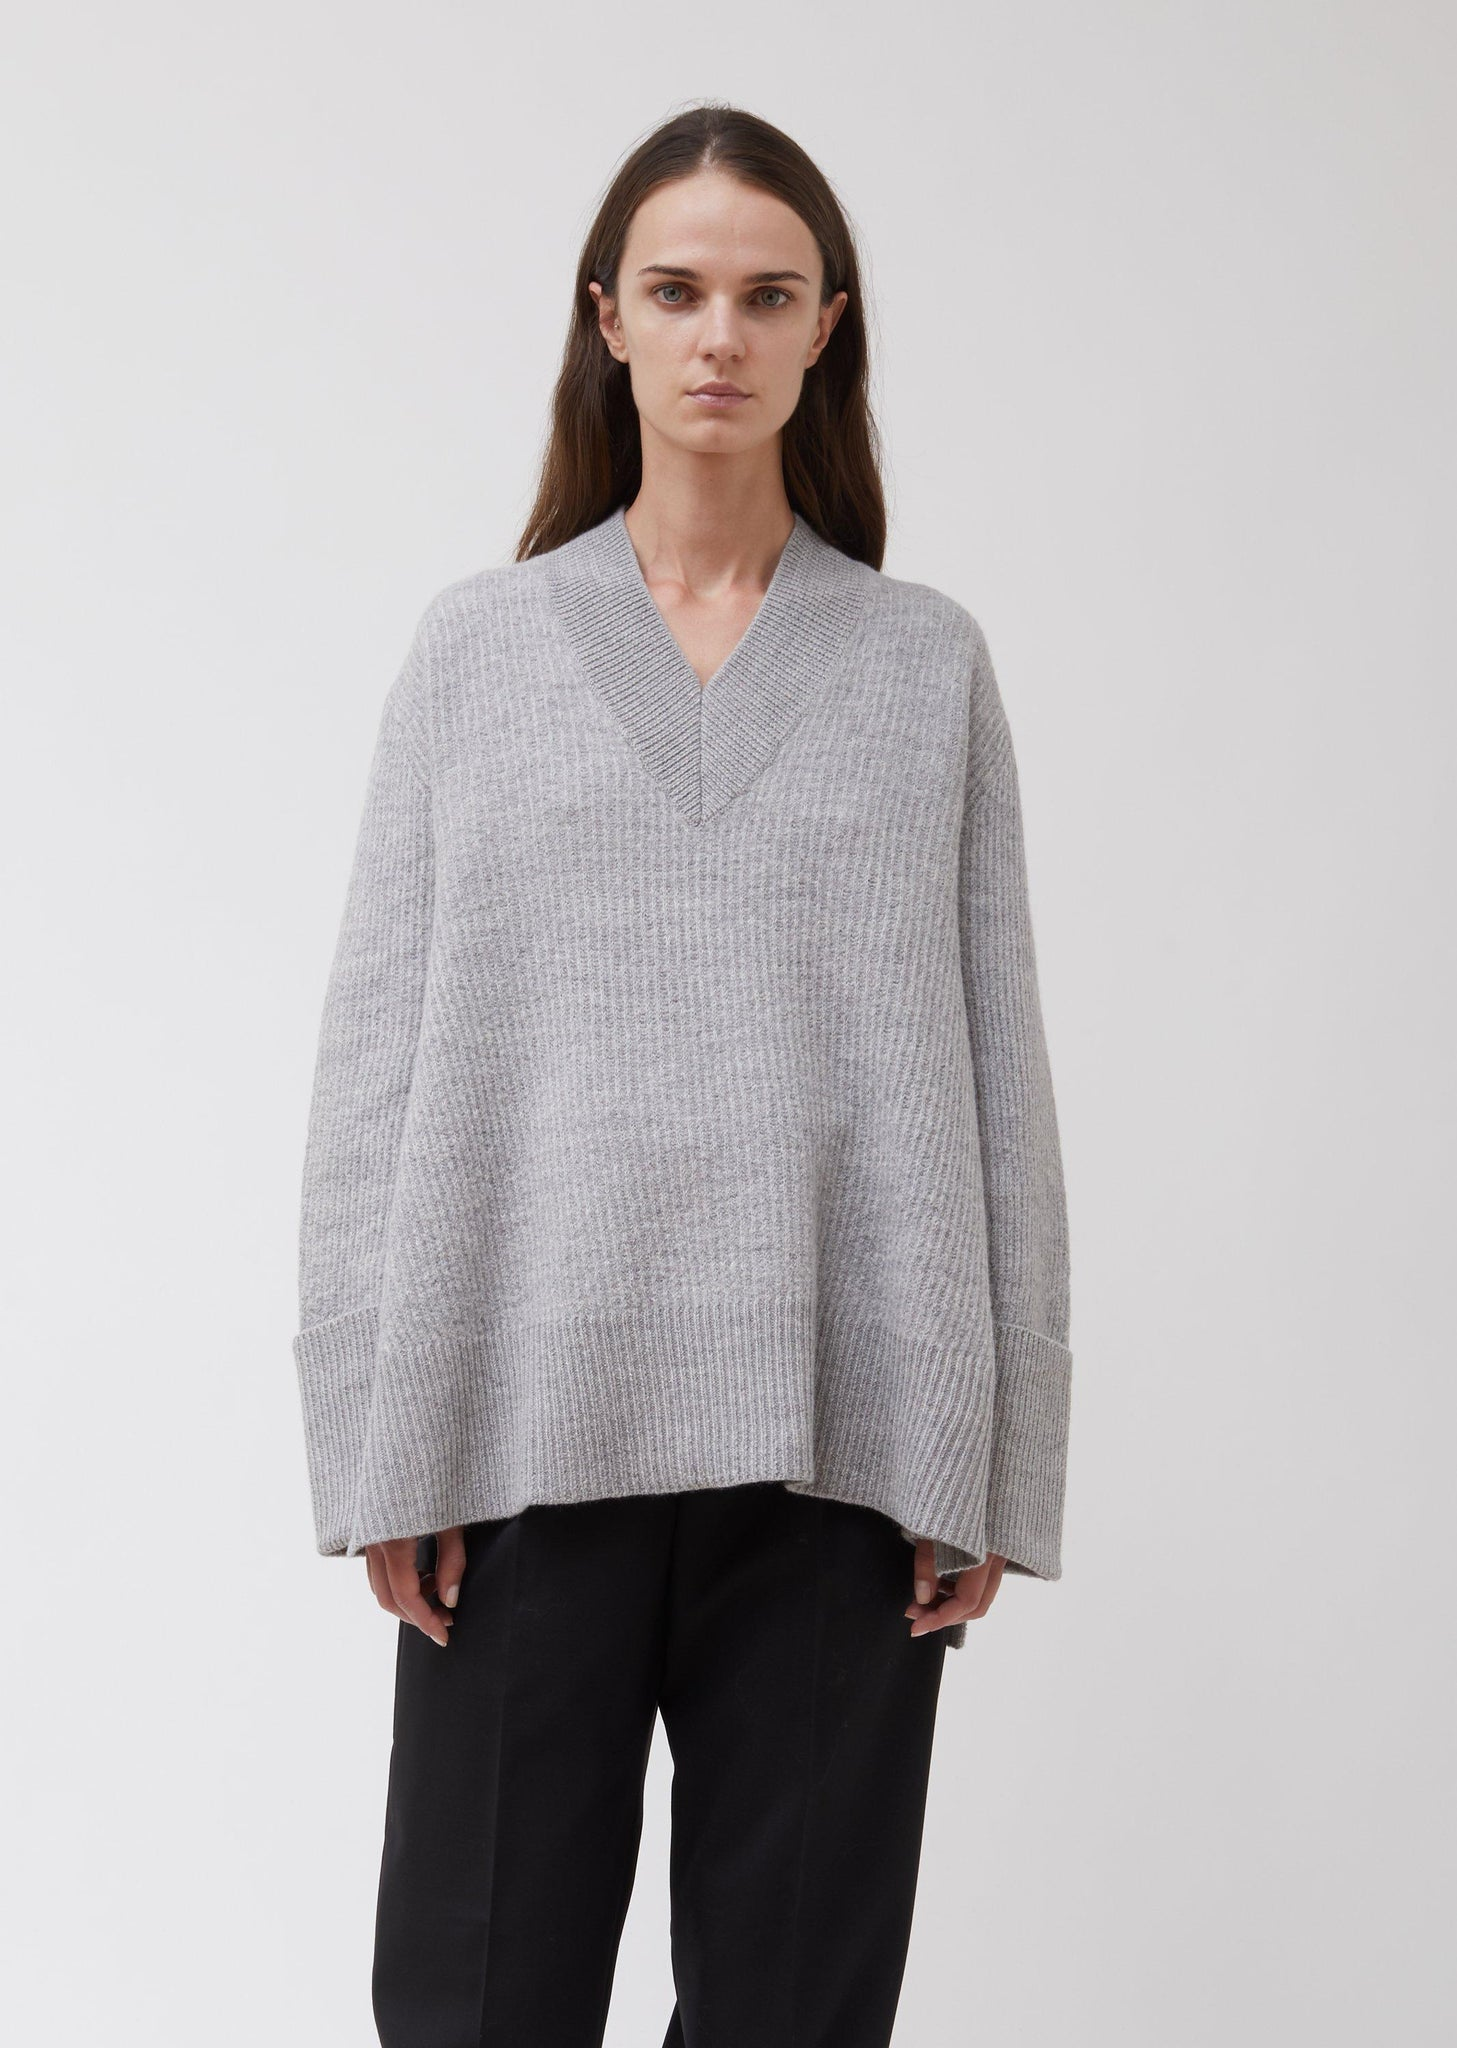 MOON SWEATER BY HOPE IN LIGHT GREY